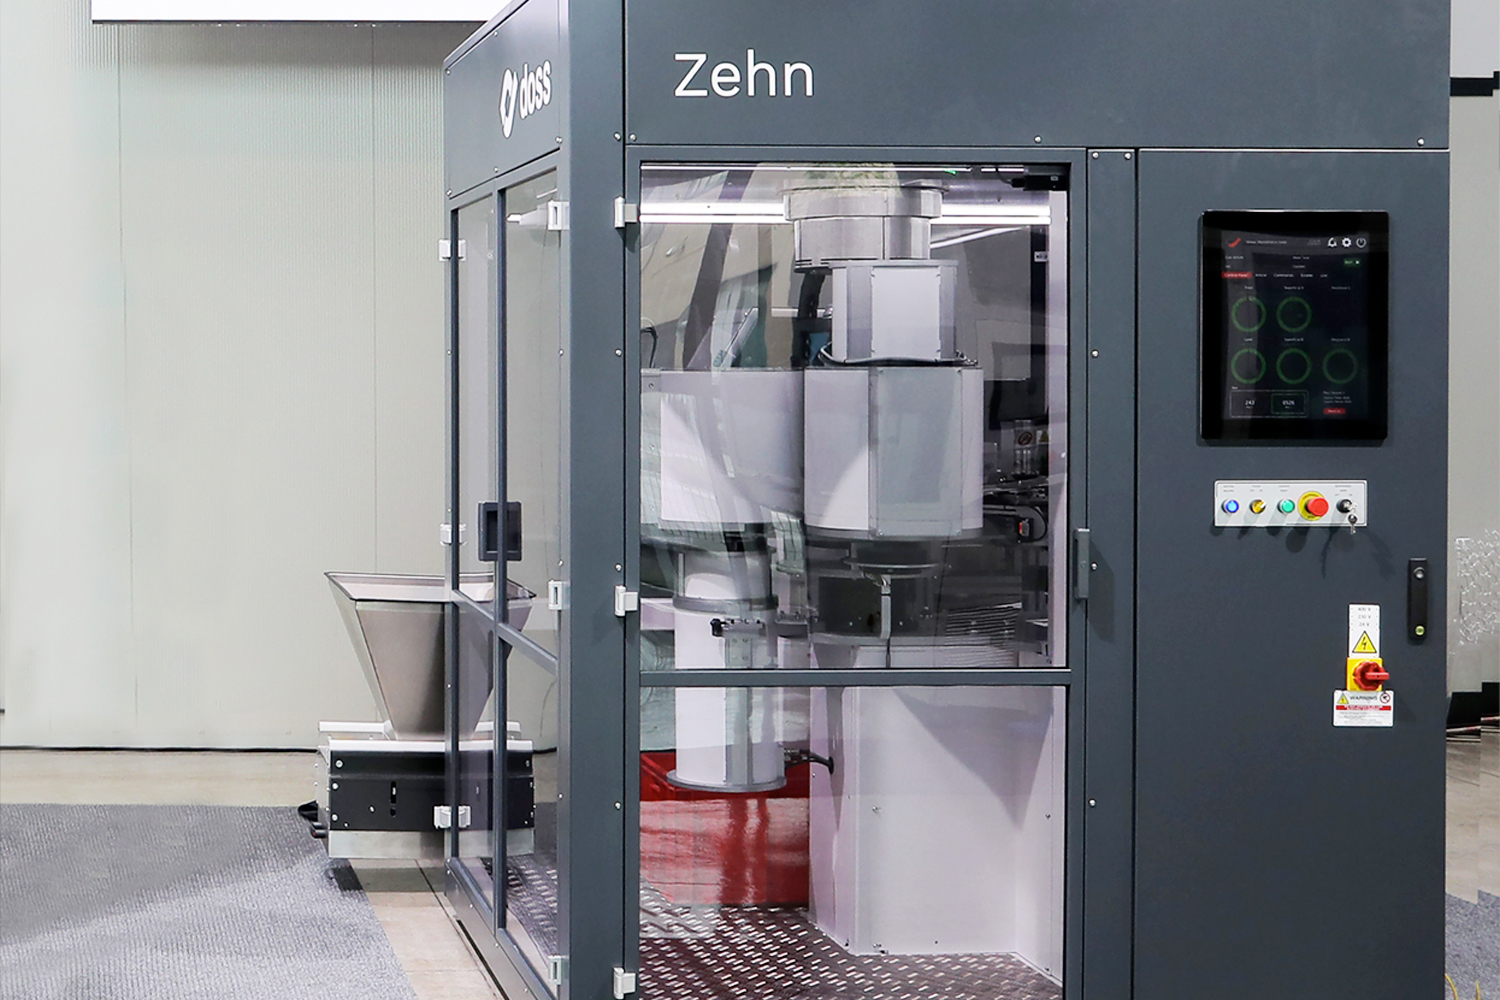 Zehn single table automatic inspection machine by Doss Visual Solutions USA